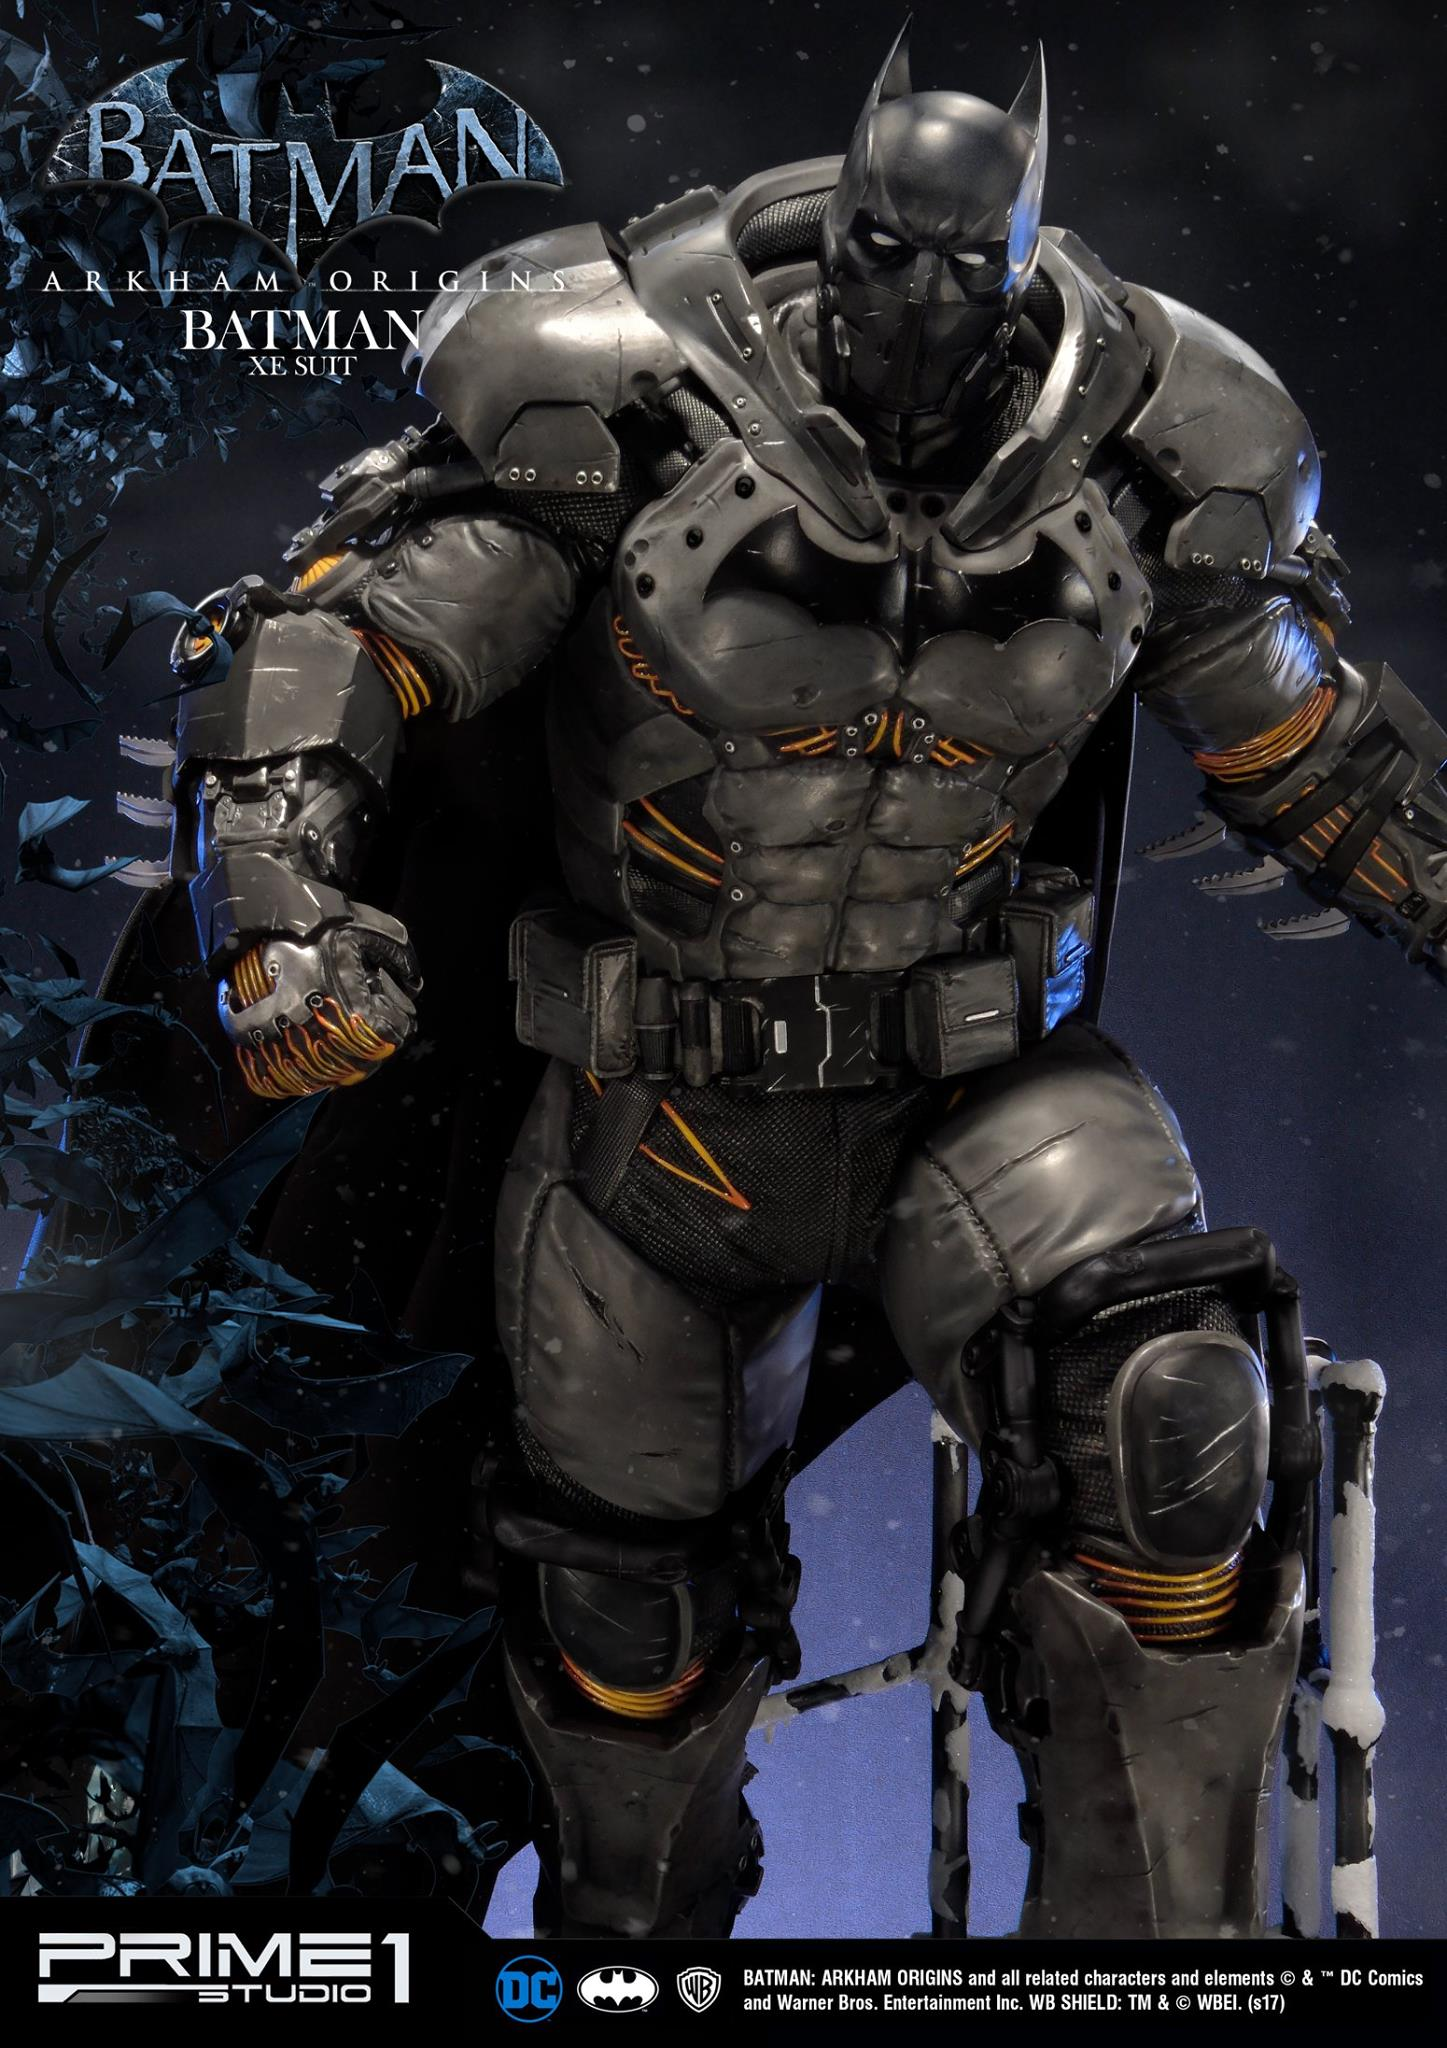 Prime 1 Batman XE Suit Statue 002